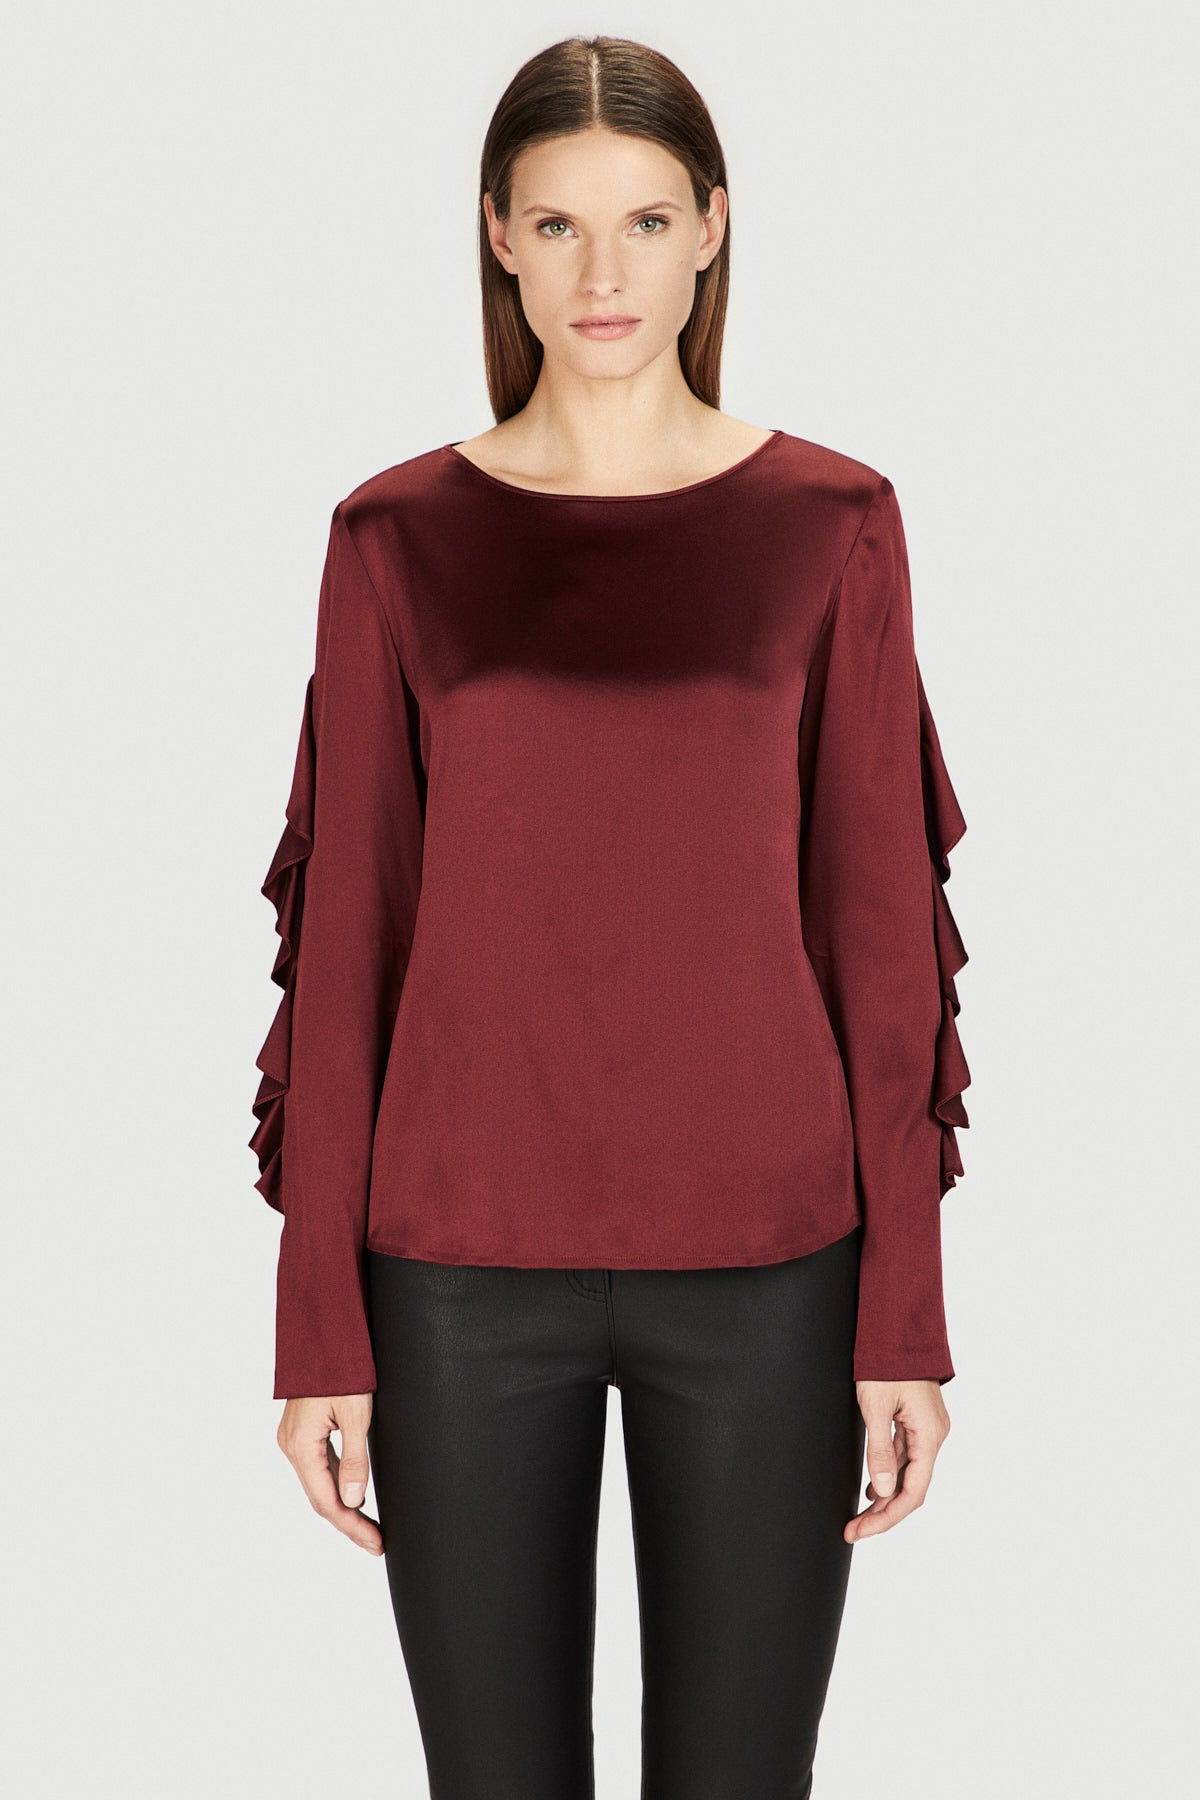 Silk Ruffle Sleeve Shirt in Burgundy